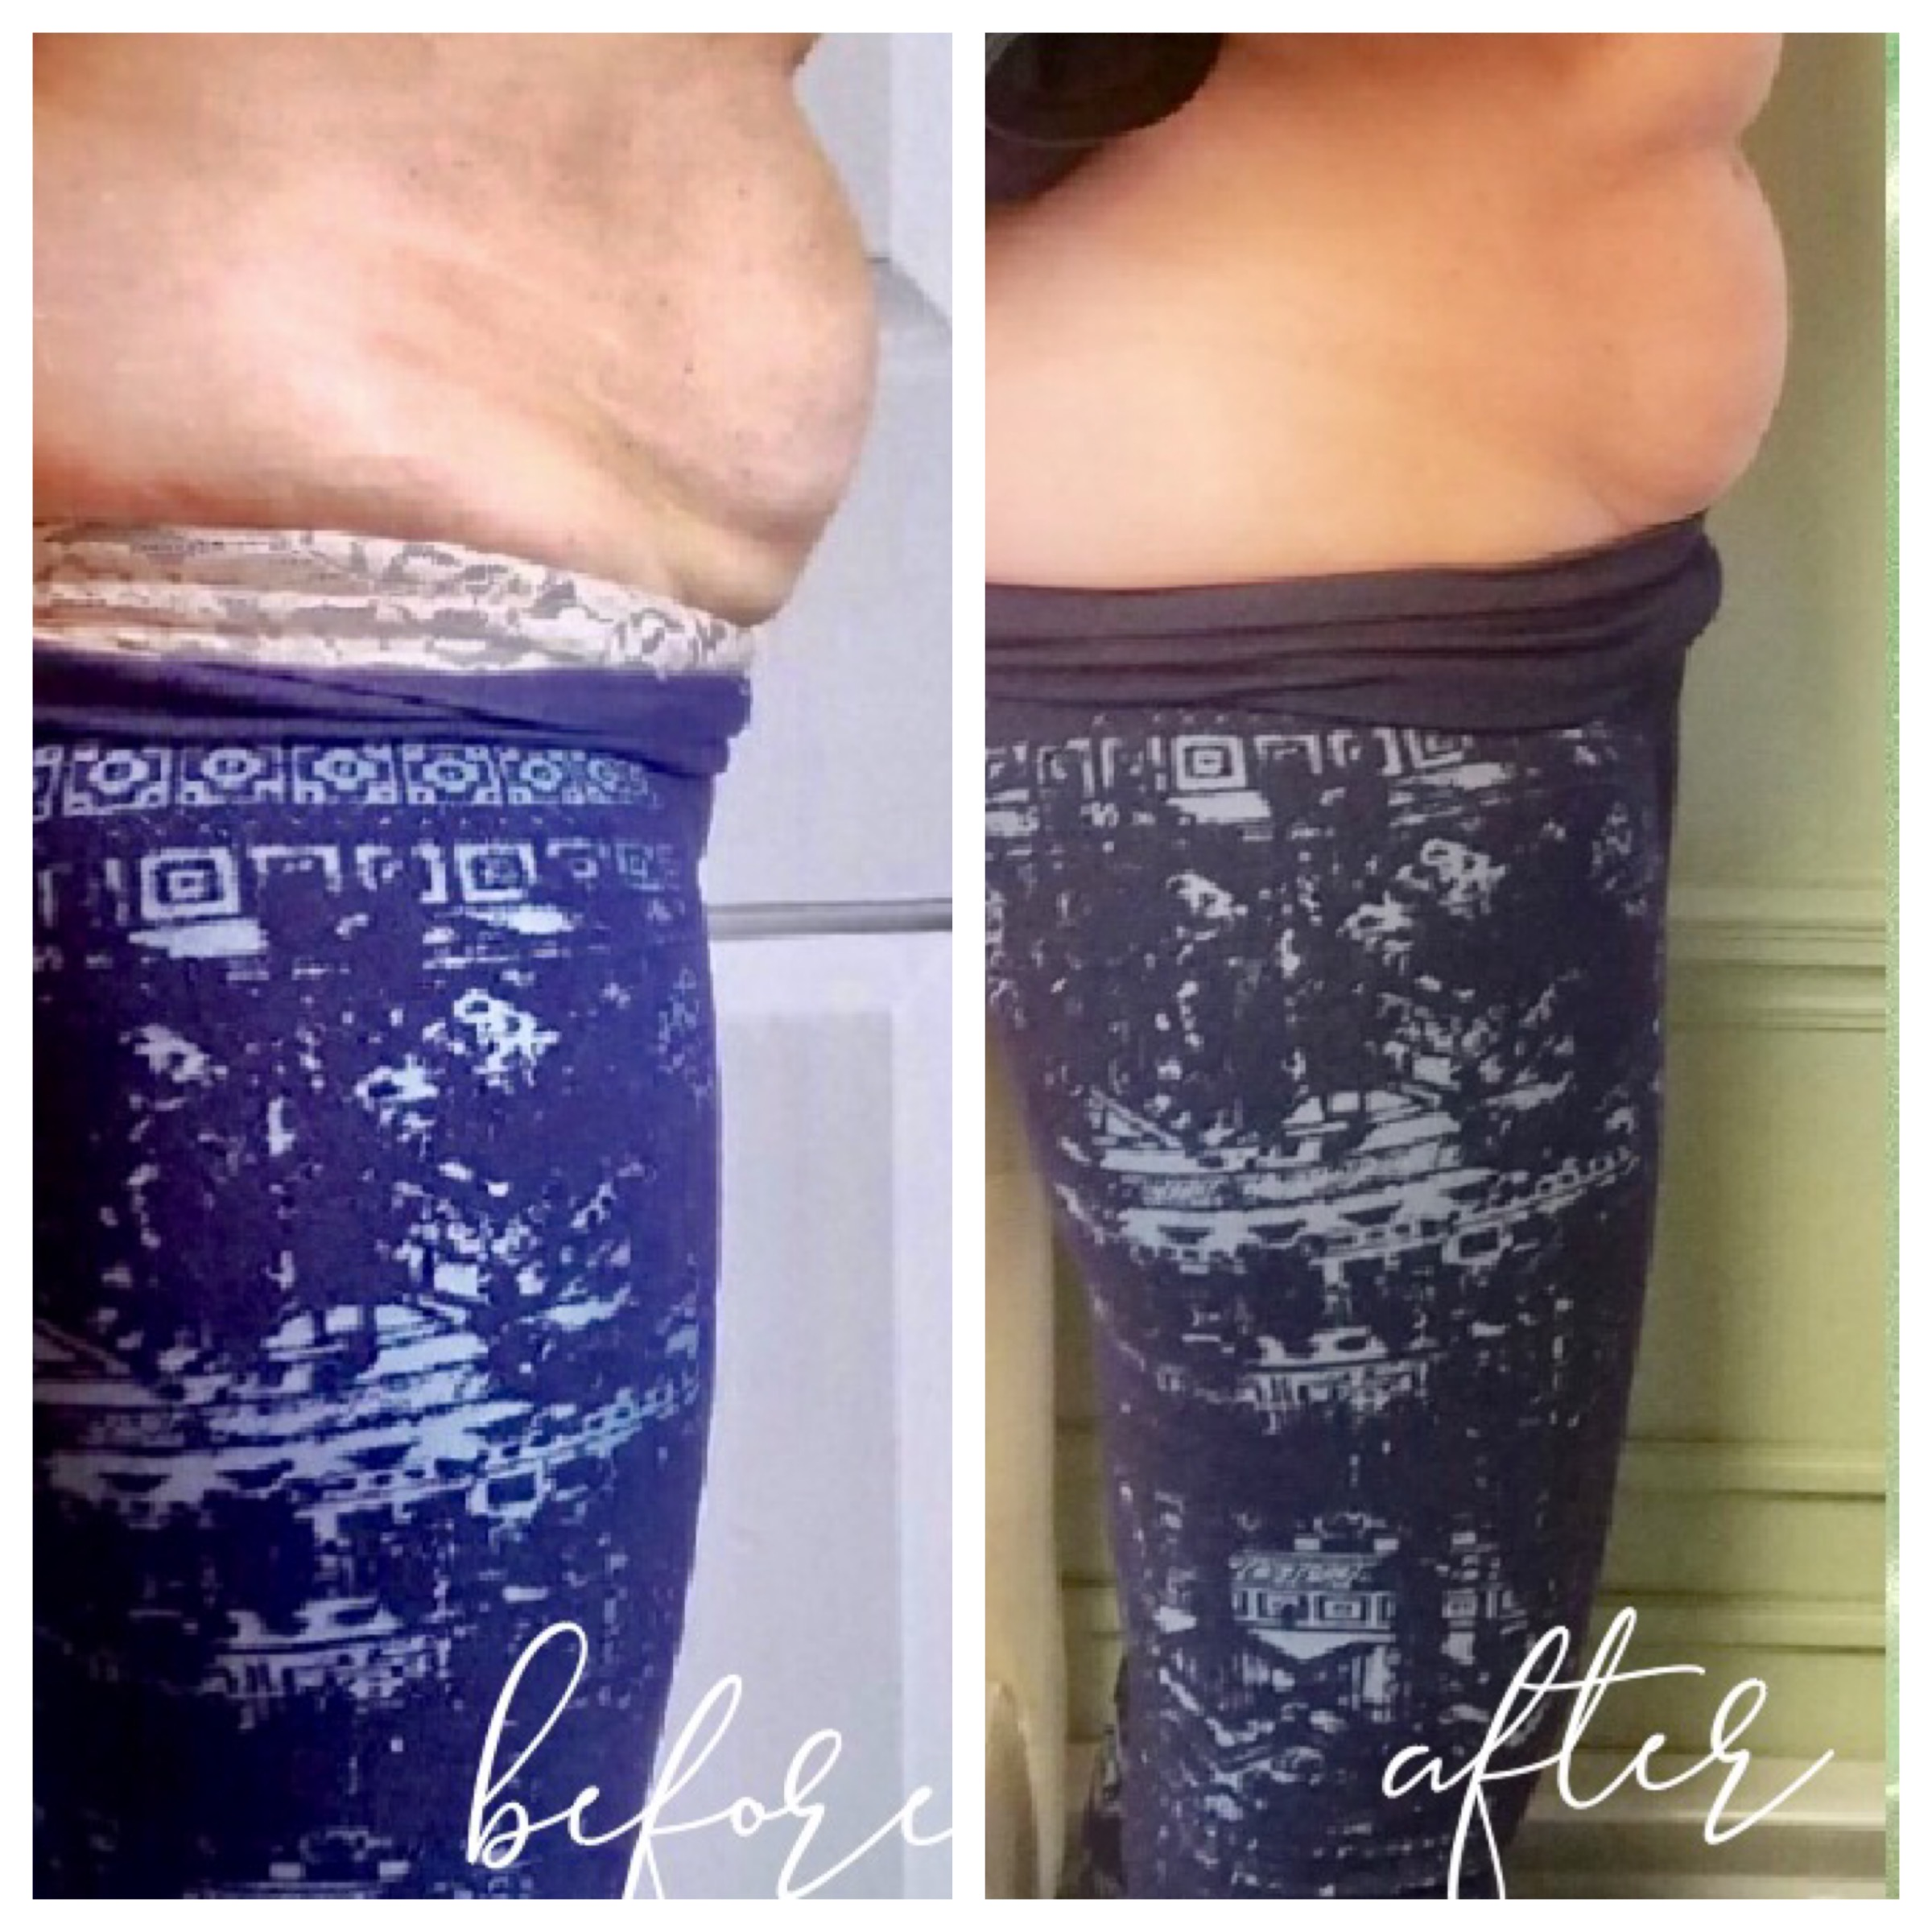 Cavitation Lipo Tummy Tightening and Smo